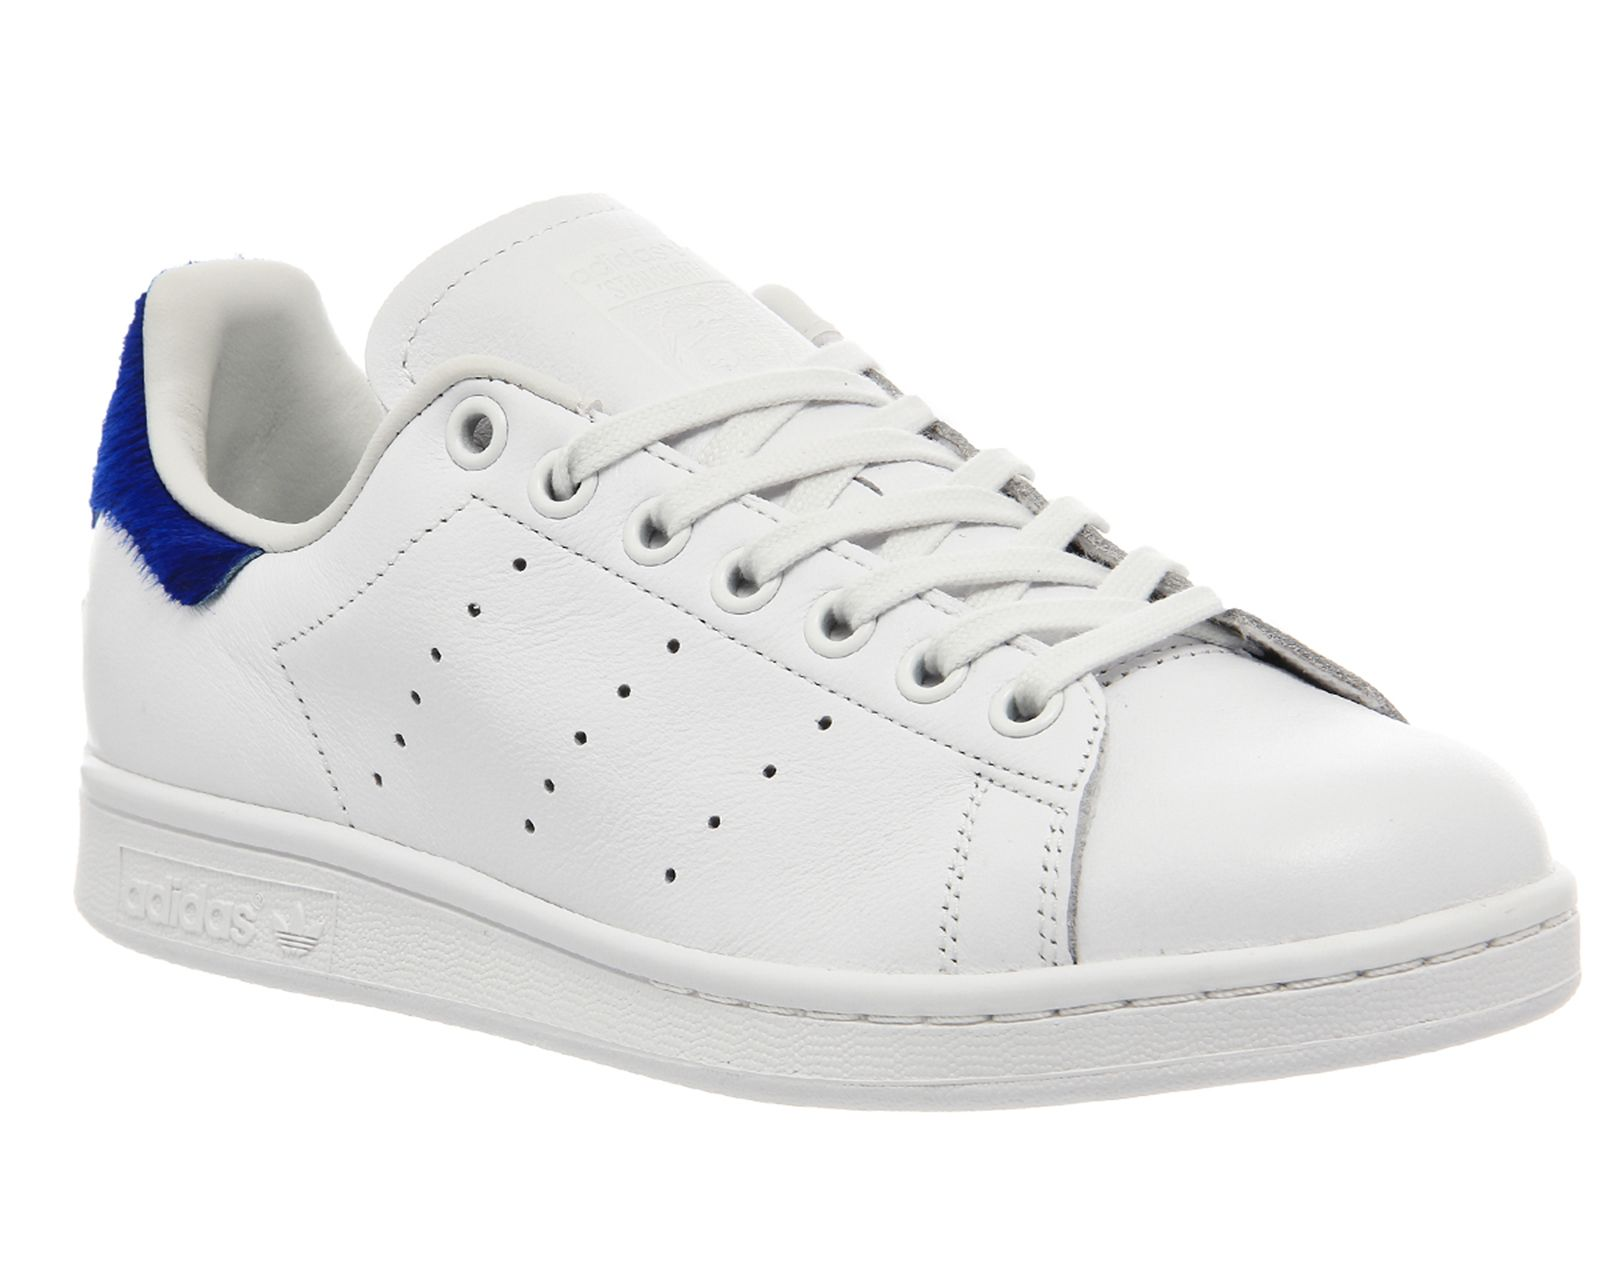 08a9b0aa0d0 Buy Vintage White Blue Pony Adidas Stan Smith Trainers from OFFICE.co.uk.